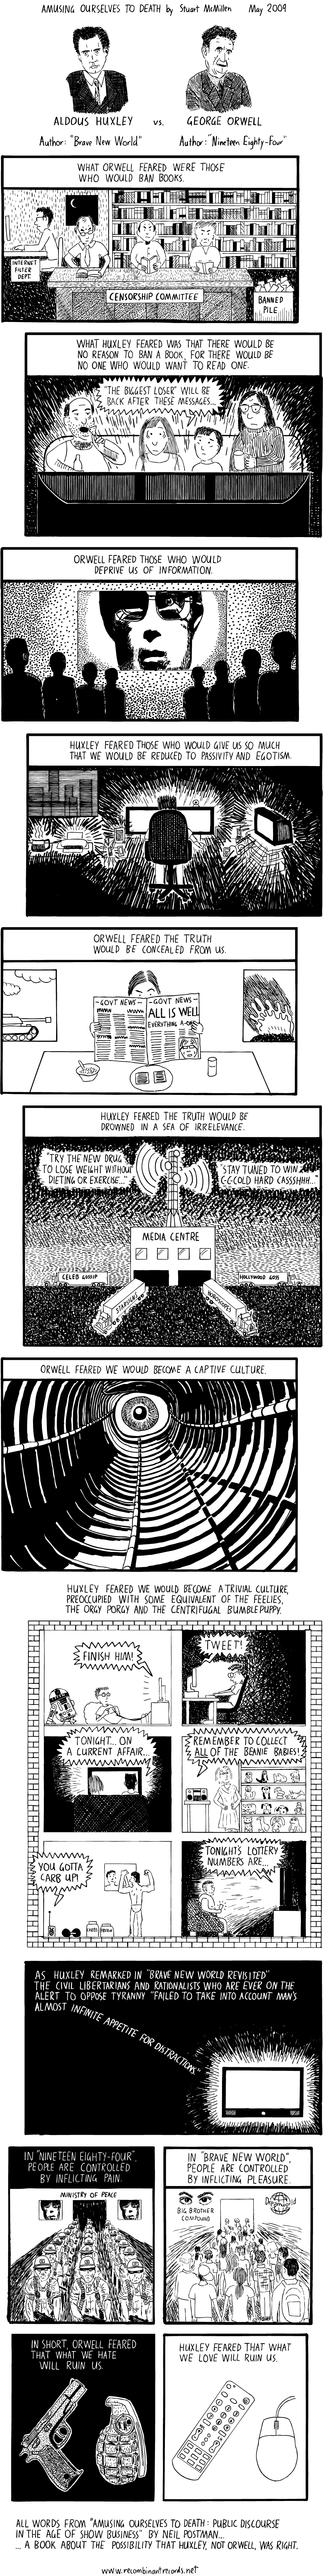 george orwell vs aldous huxley brave new world vs 1984 comic Amusing Ourselves to Death [Comic Strip]